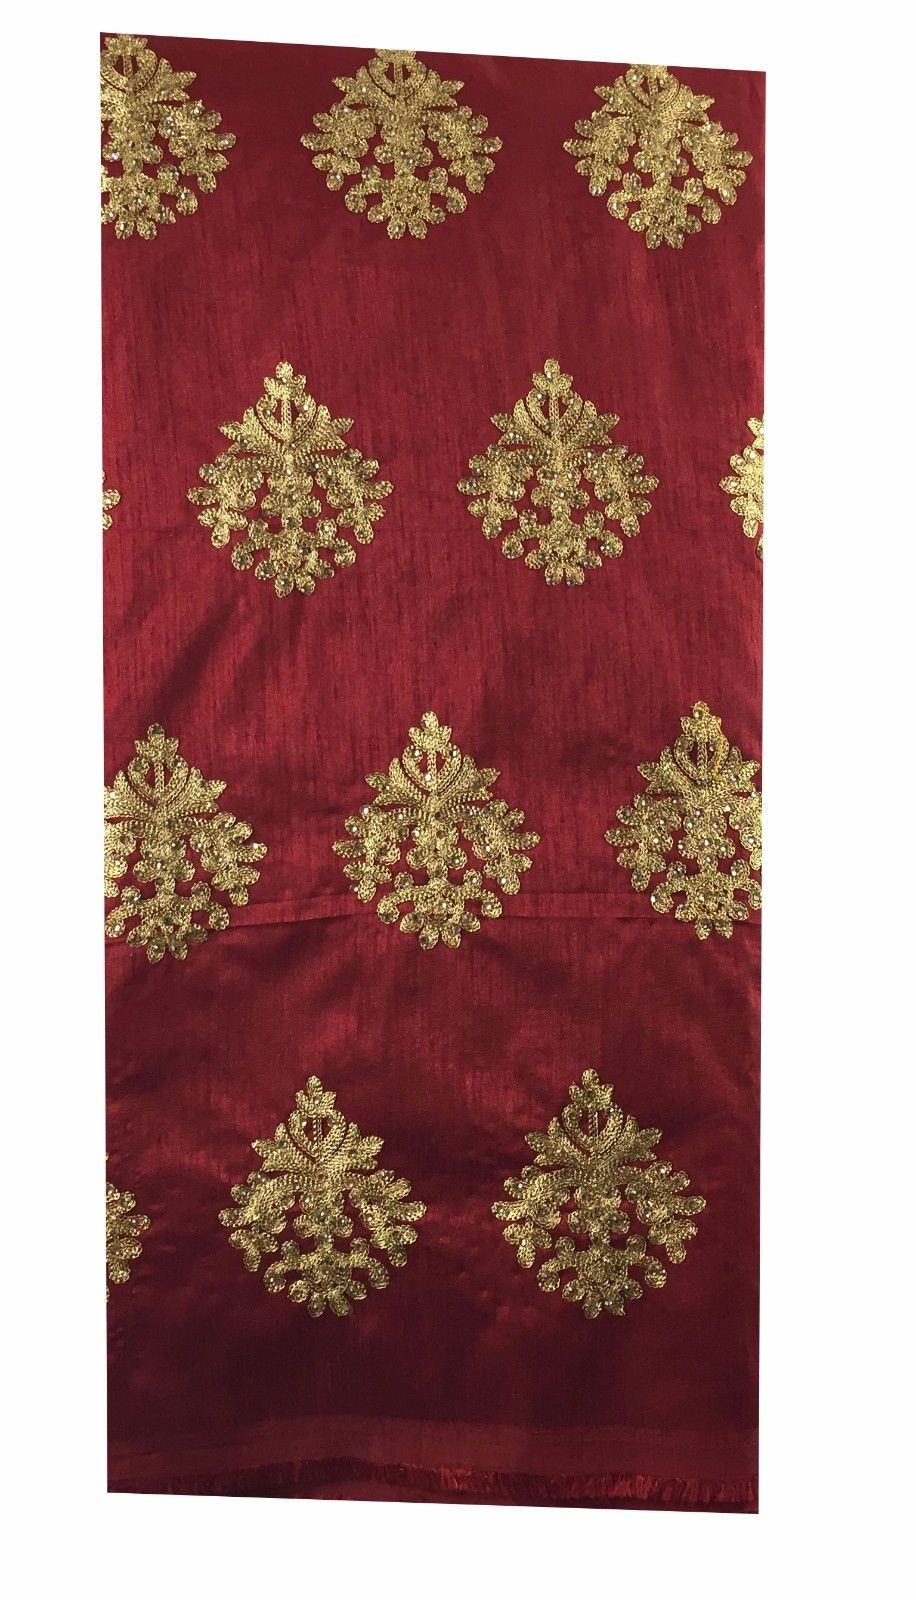 buy lace fabric online india running material online shopping Embroidered Dupion Silk Red, Gold 43 inches Wide 8056